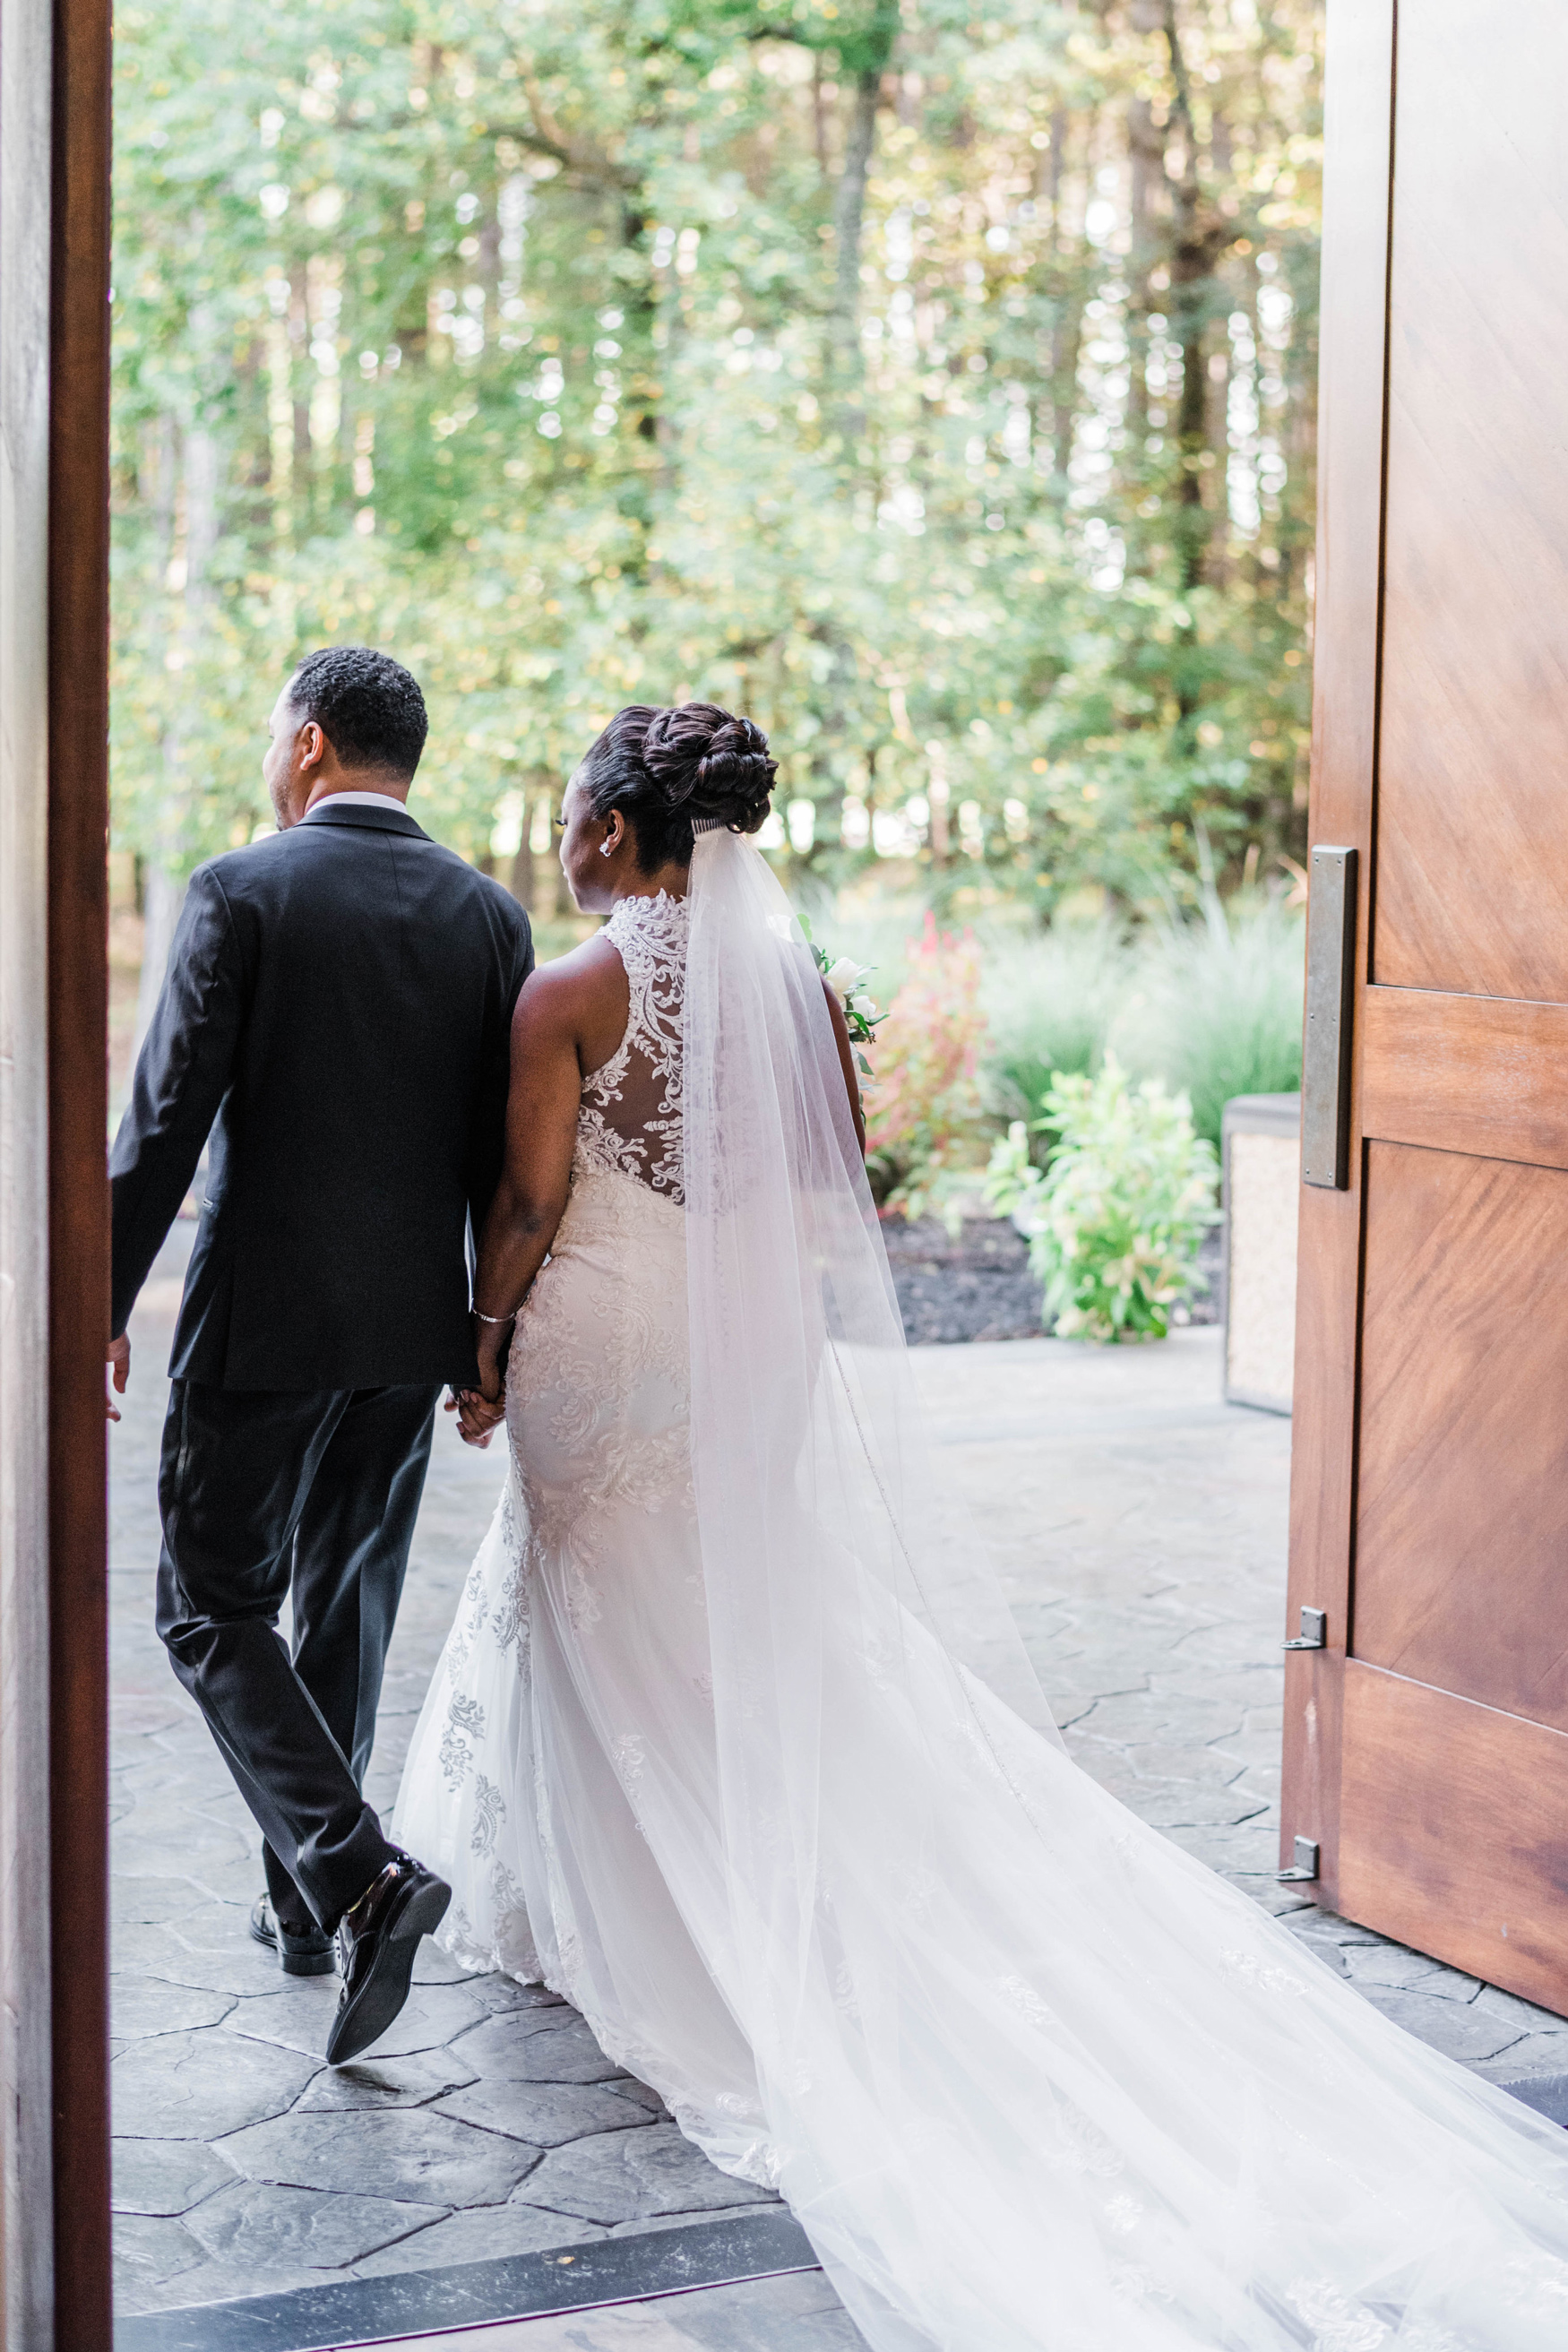 bride and groom exiting the church after wedding ceremony